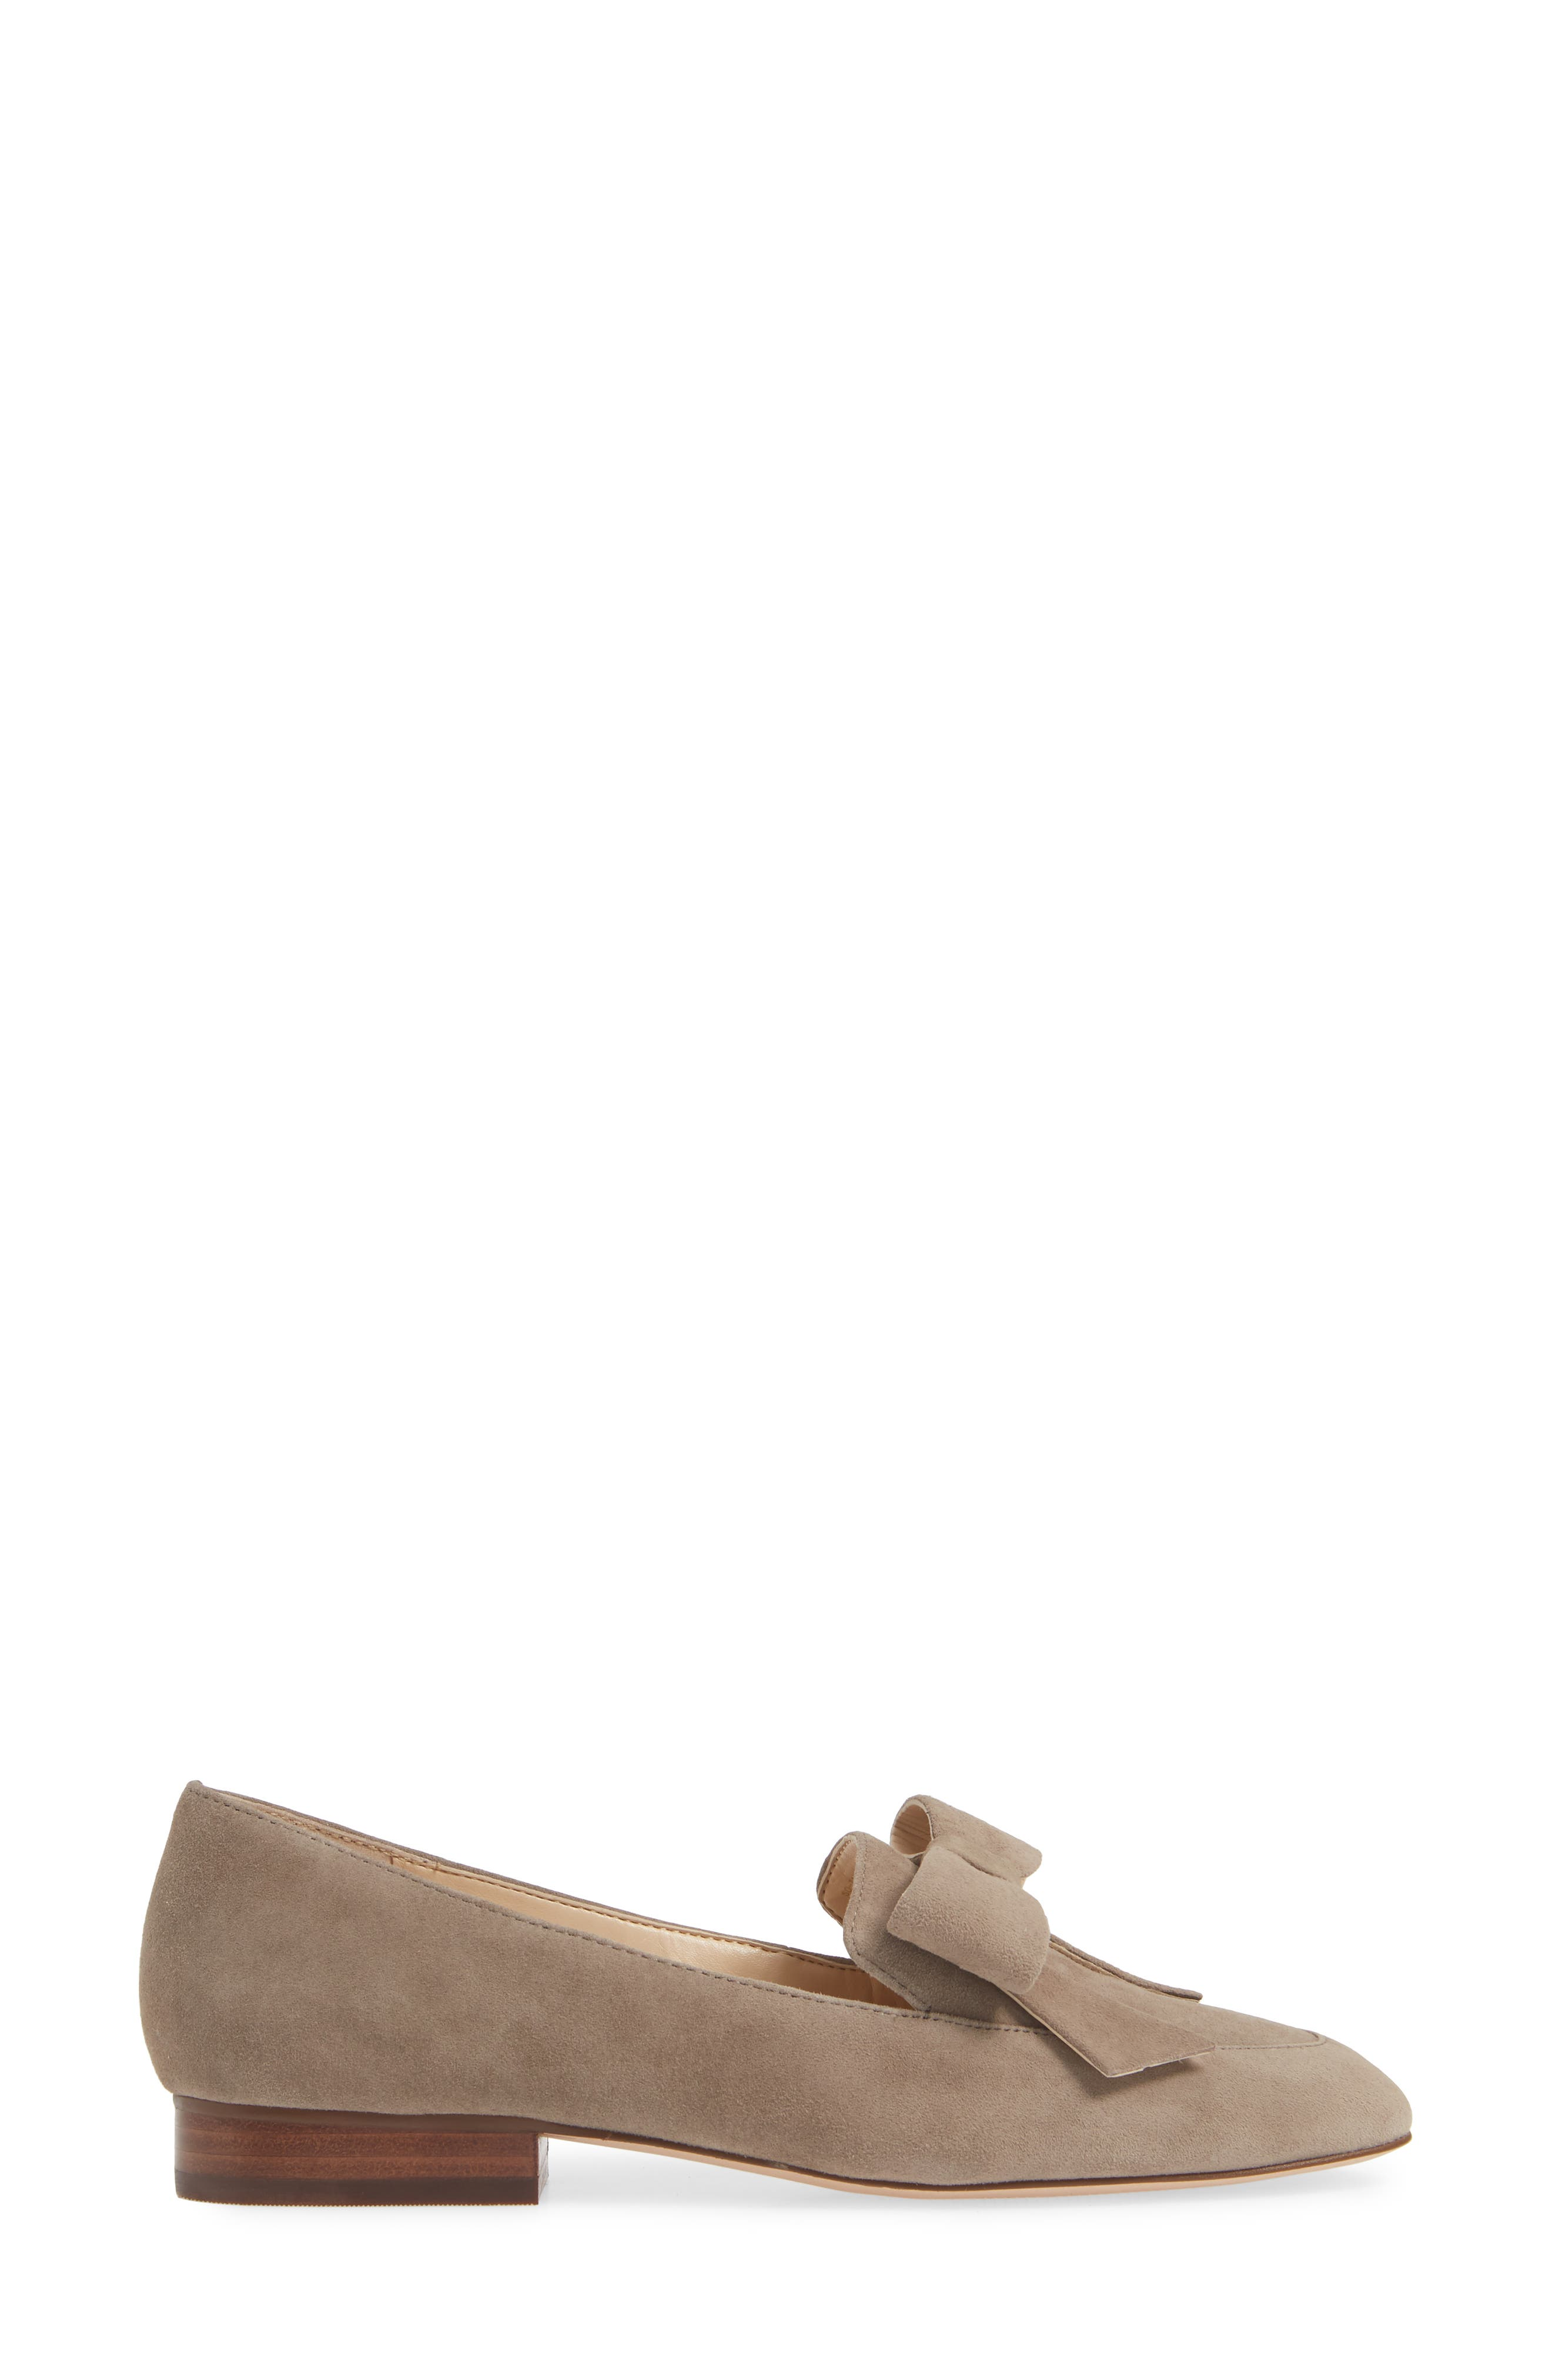 Tannse Bow Loafer,                             Alternate thumbnail 3, color,                             MUSHROOM SUEDE